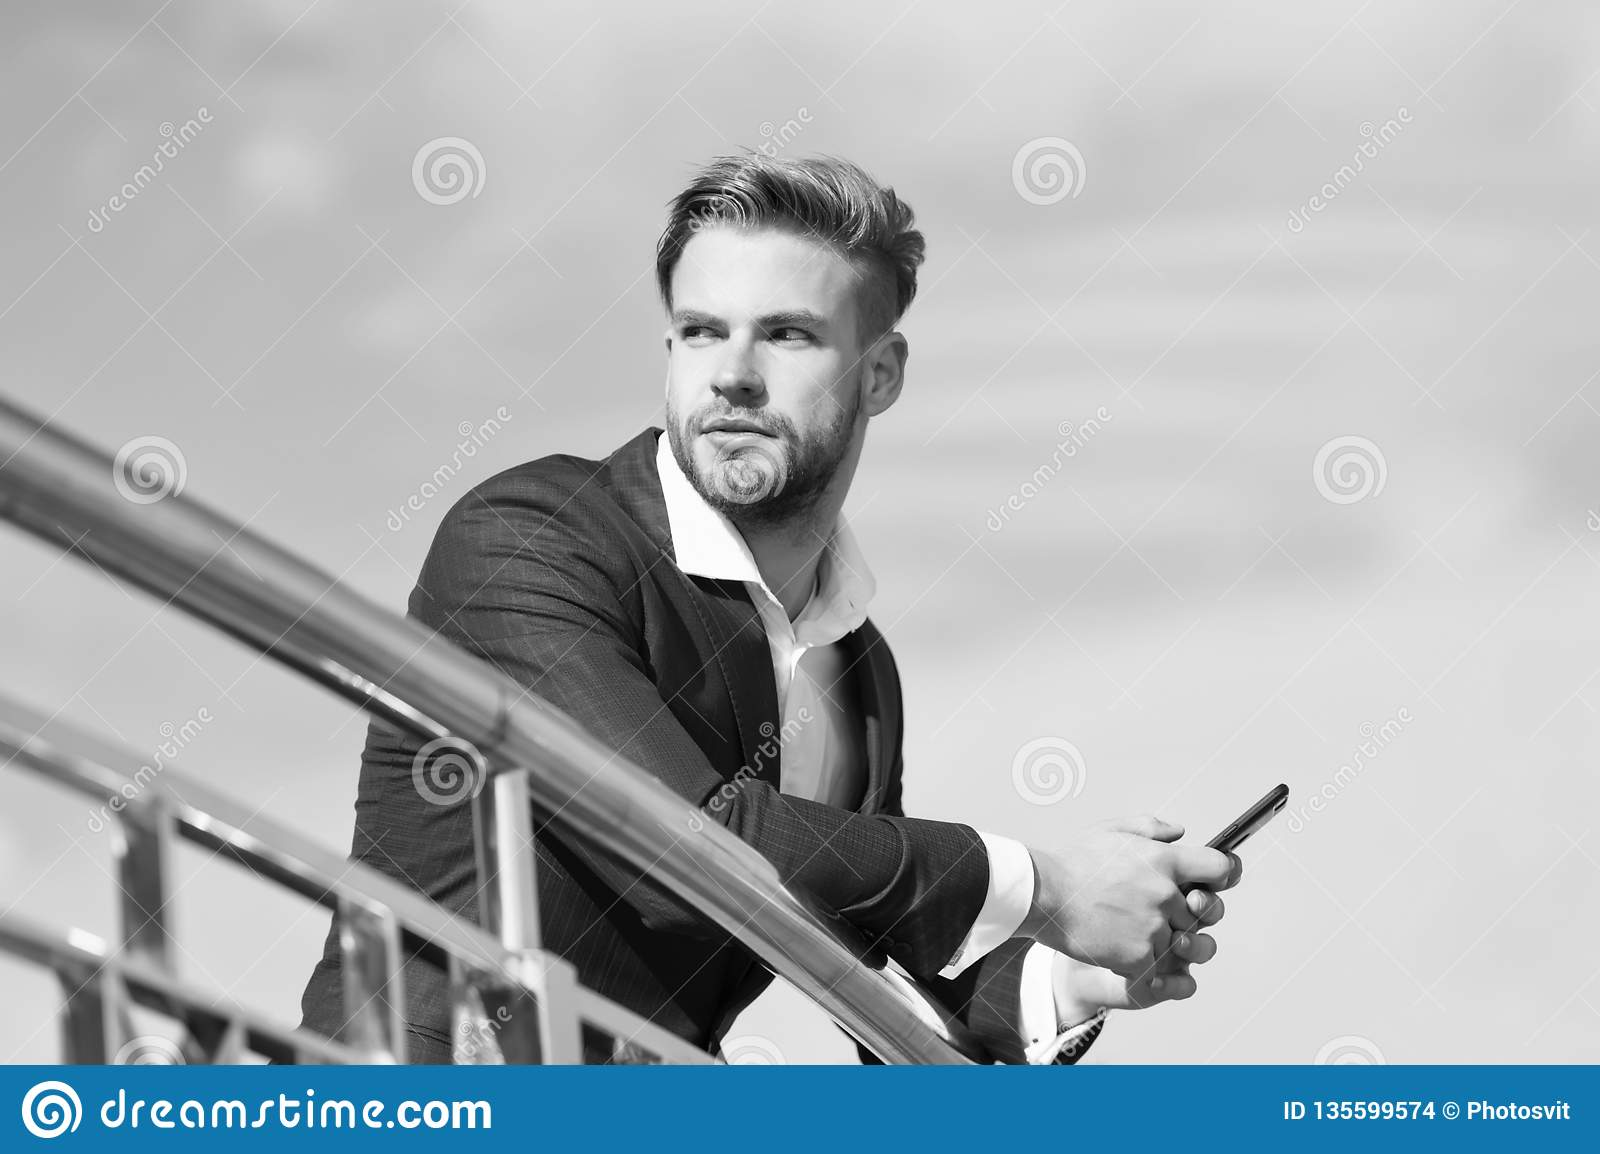 Waiting important call from partner. Businessman use smartphone for video call or texting sky background. Man in suit